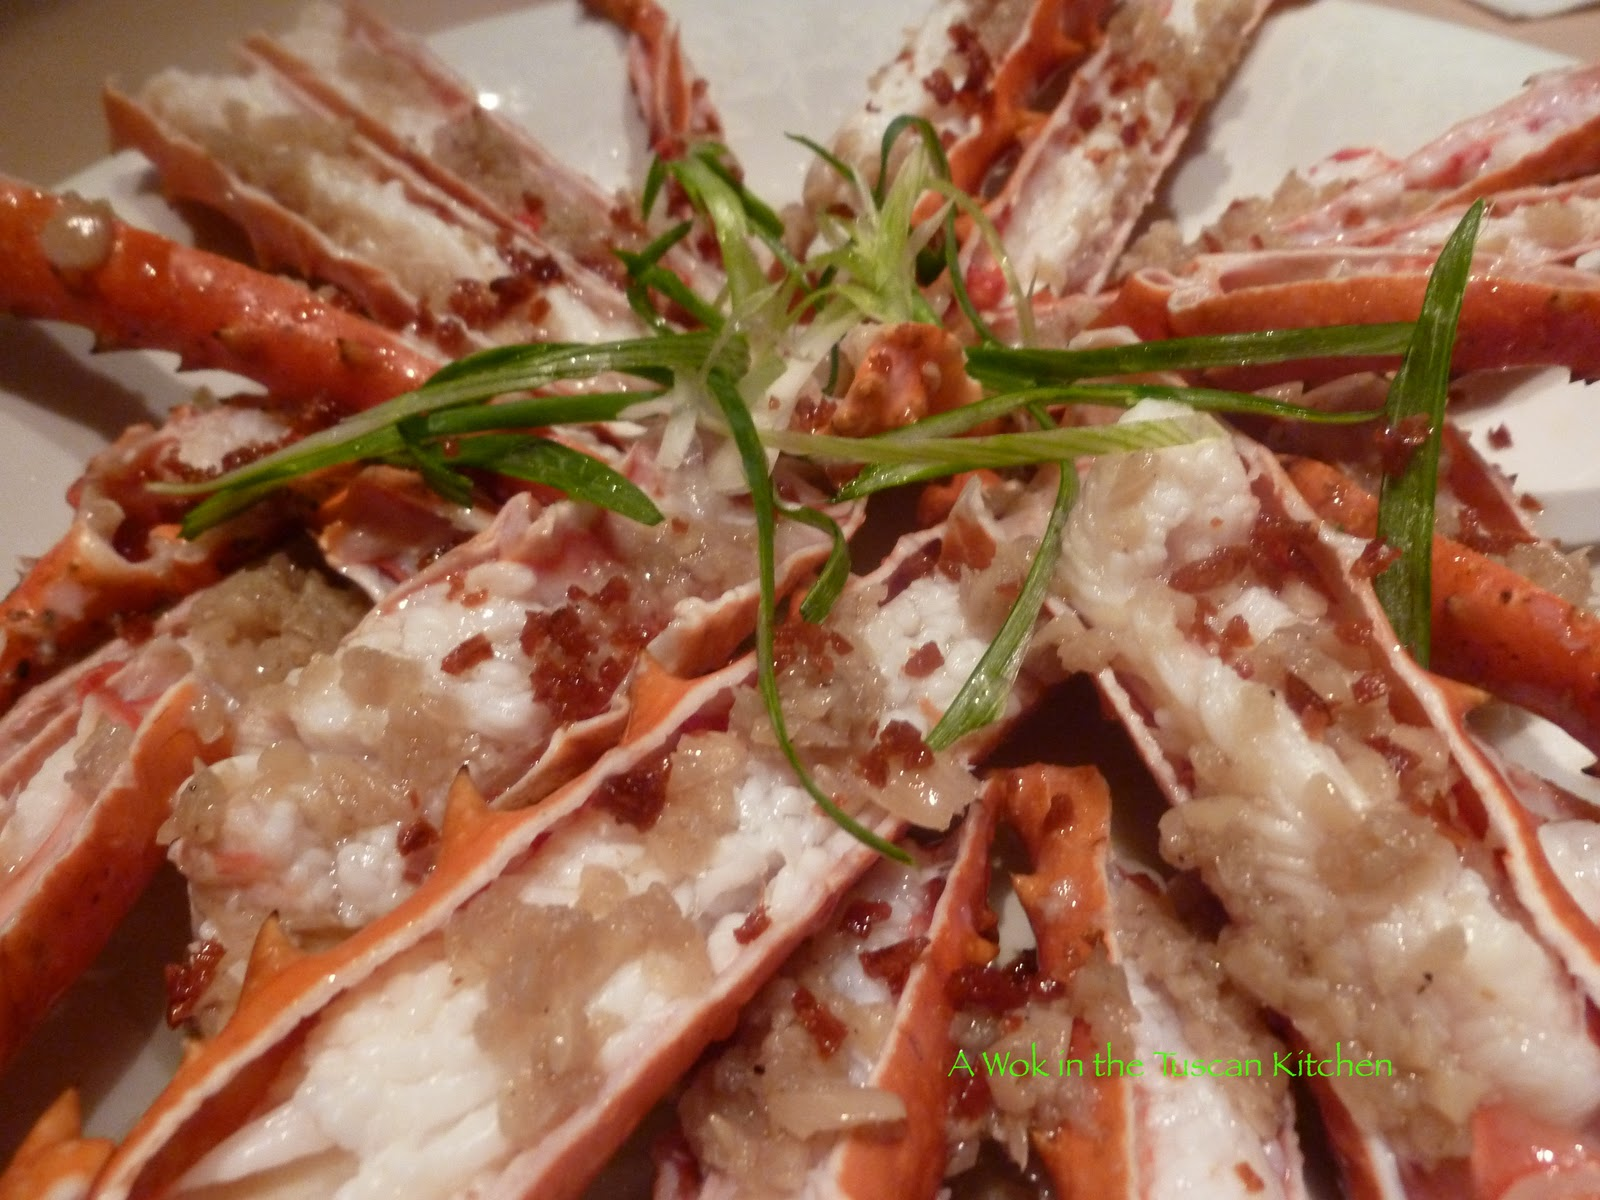 Alaskan King Crab Part 2 Recipe 1 Steamed With Garlic Sauce Chinese Style Just Like Your Favorite Restaurant